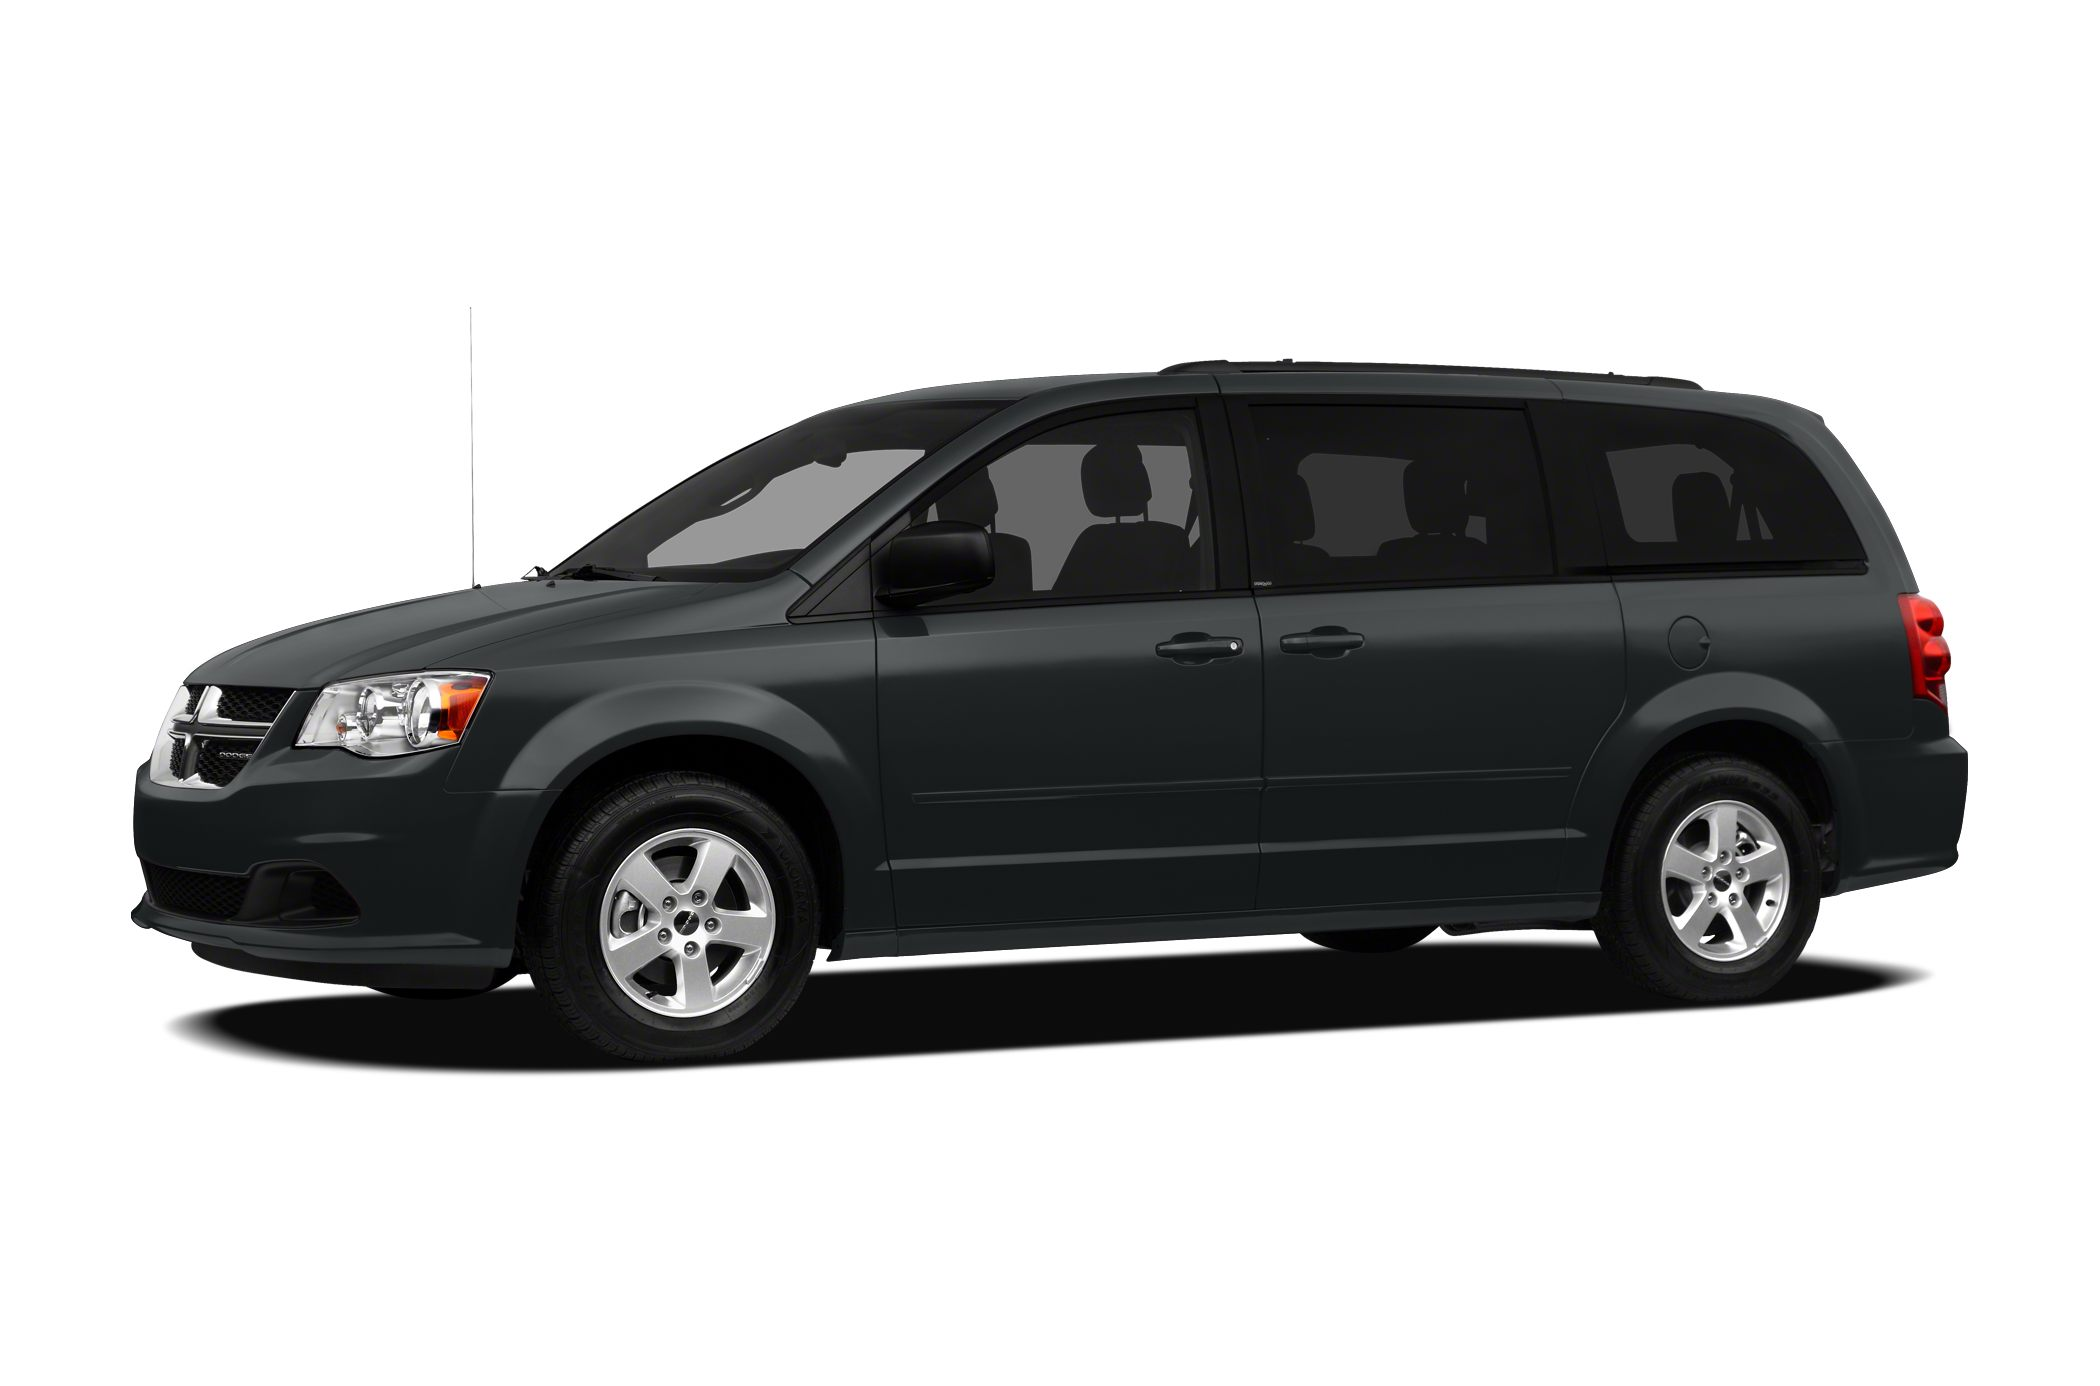 2012 Dodge Grand Caravan SXT Minivan for sale in Norwich for $12,987 with 62,354 miles